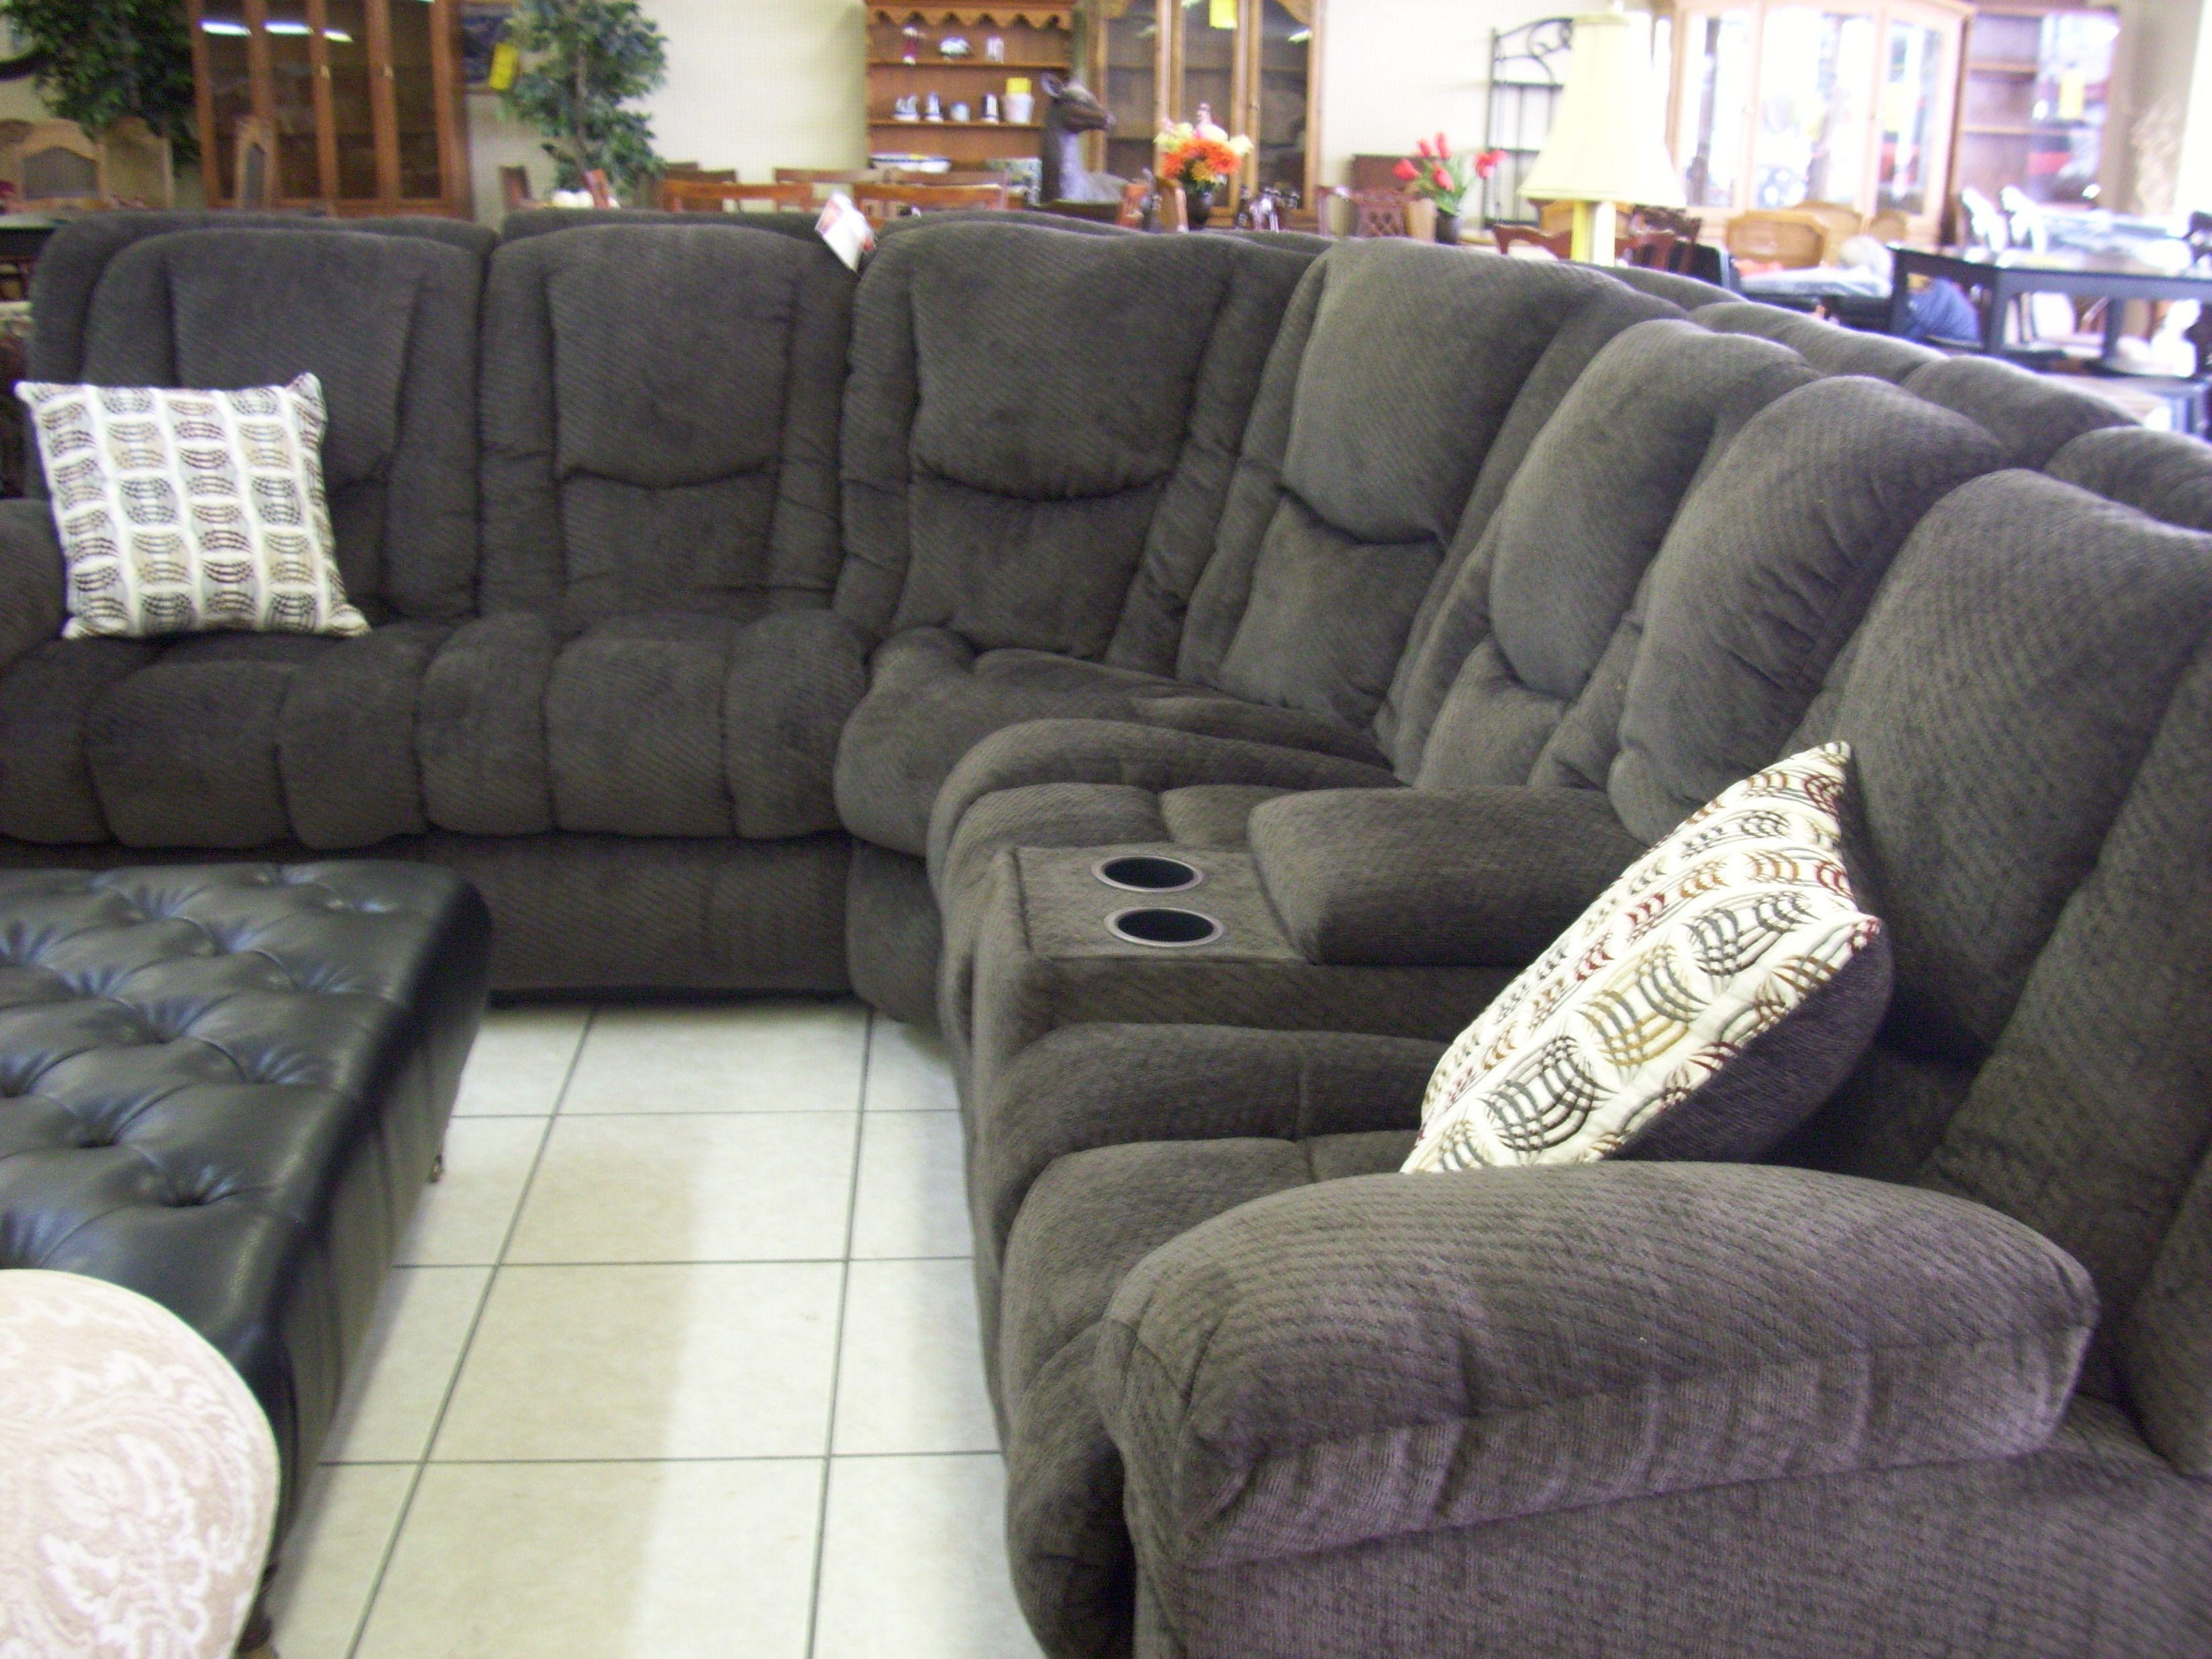 Victoria Bc Sectional Sofas inside Well-liked Sectional Couch Victoria Bc Tags : Awesome New Sectional Couch Costco